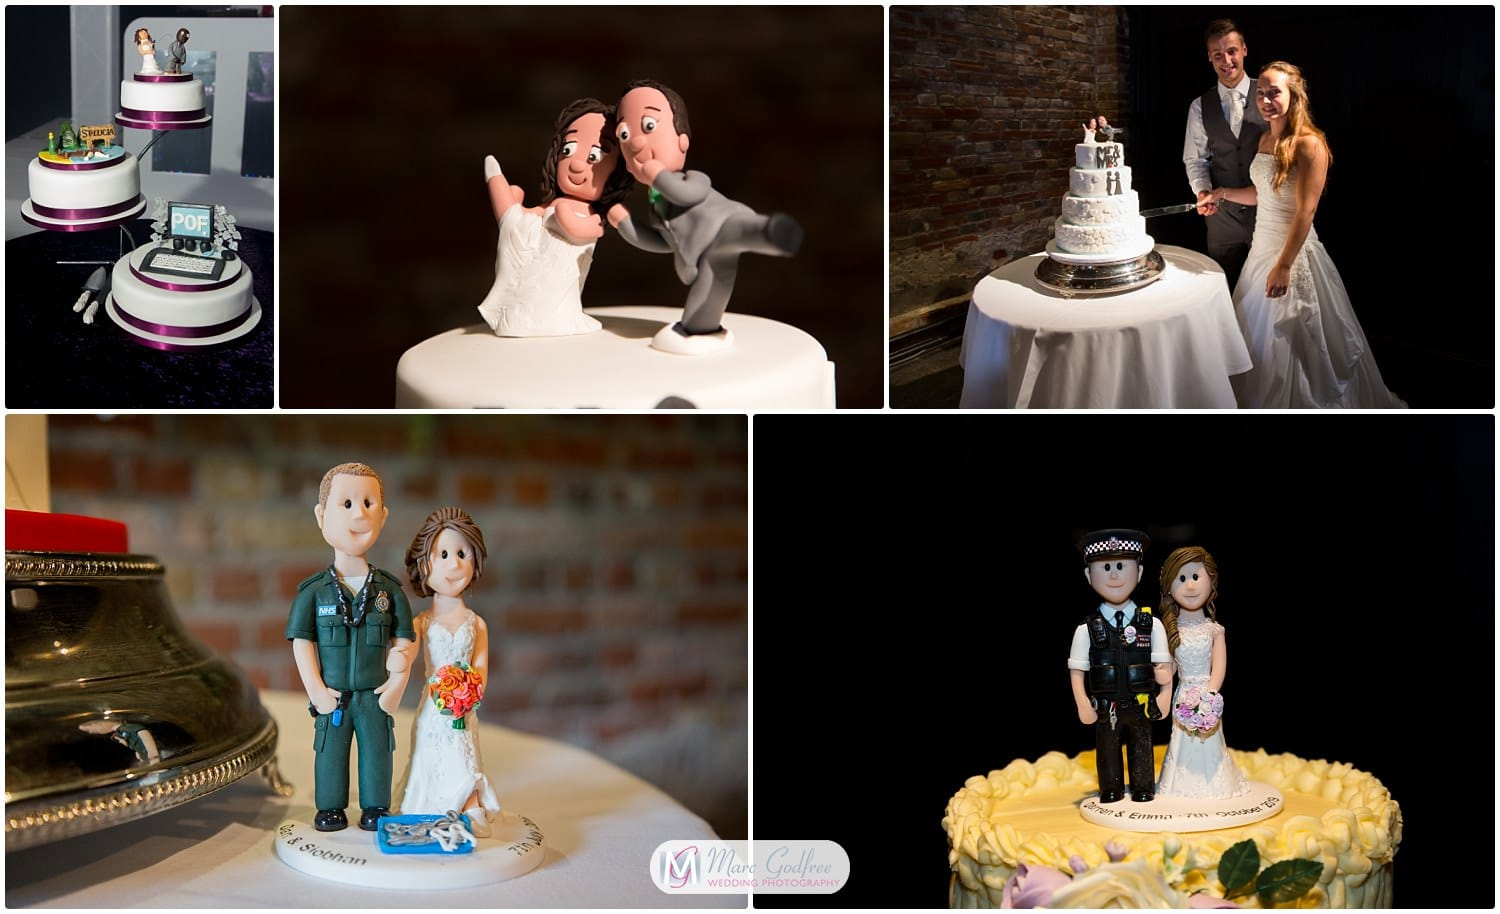 Wedding cake centre piece ideas you'll love-personalised